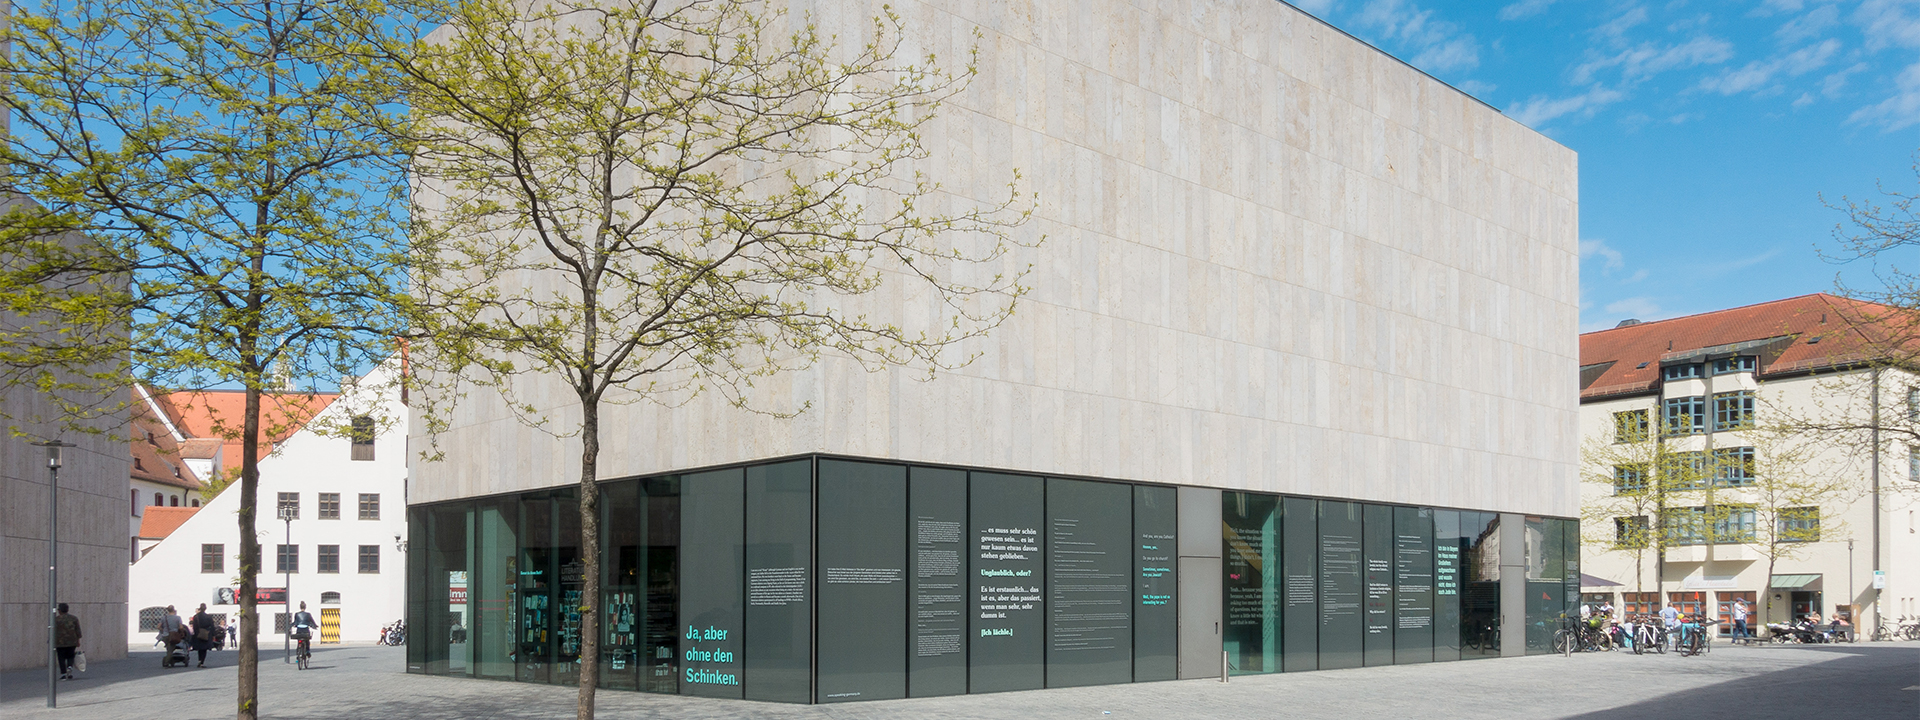 Your visit to the Jewish Museum Munich